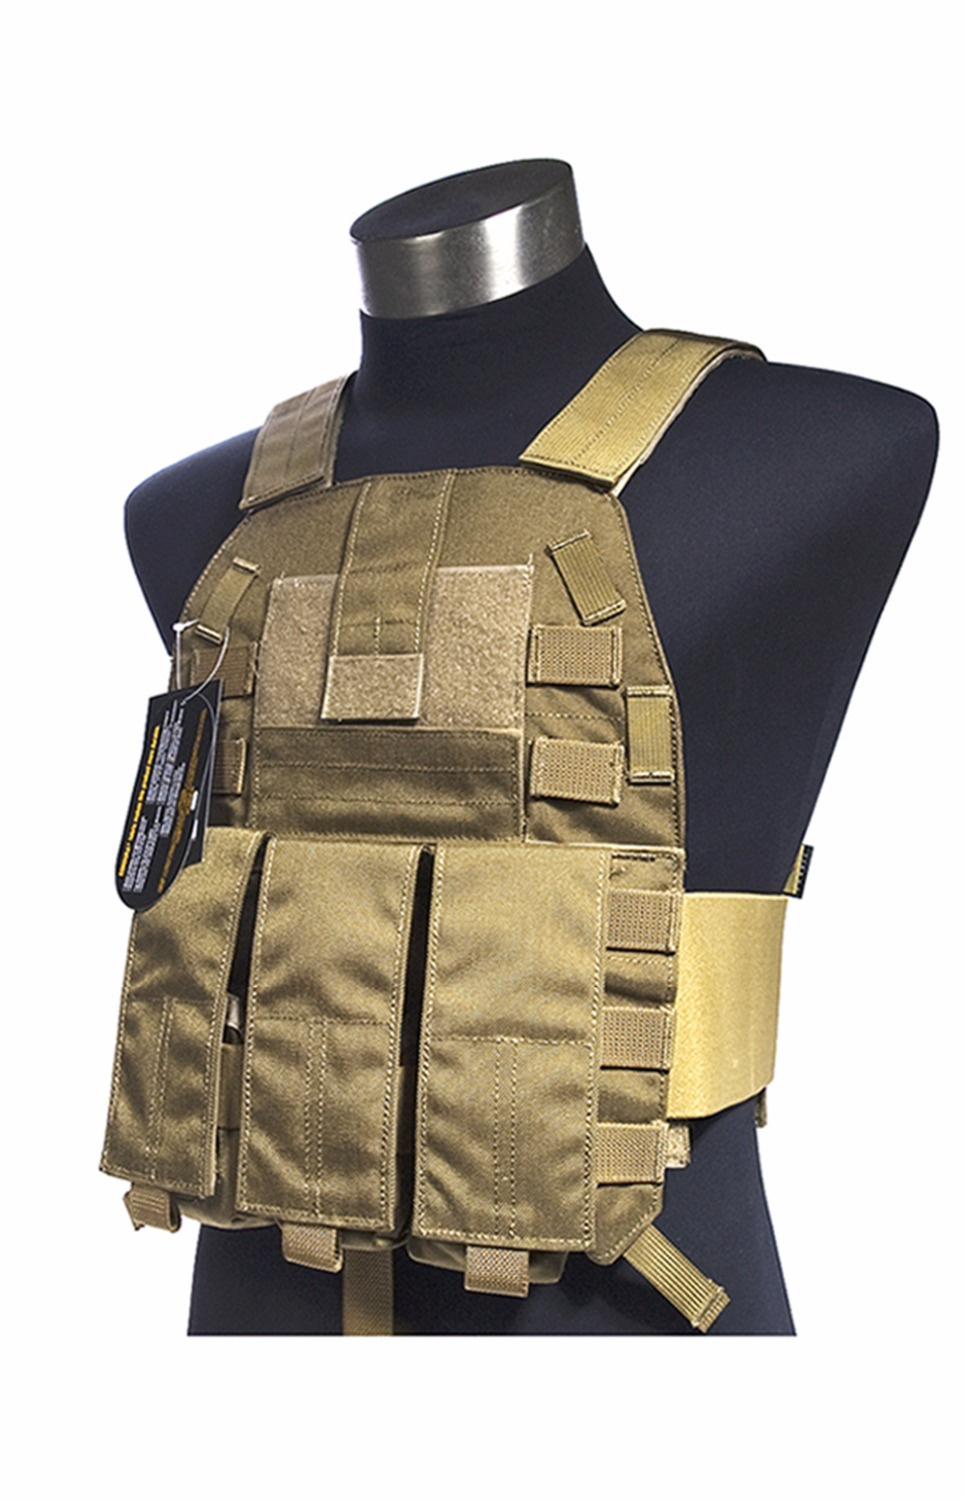 MILITECH Mil Spec Military LT6094K Coyote Brown CB Plate Carrier Combat Molle Tactical Vest Army Military Combat Vests Carrier mil spec military lt6094 coyote brown cb combat molle tactical vest army military combat vests lbt6094 style gear vest carrier